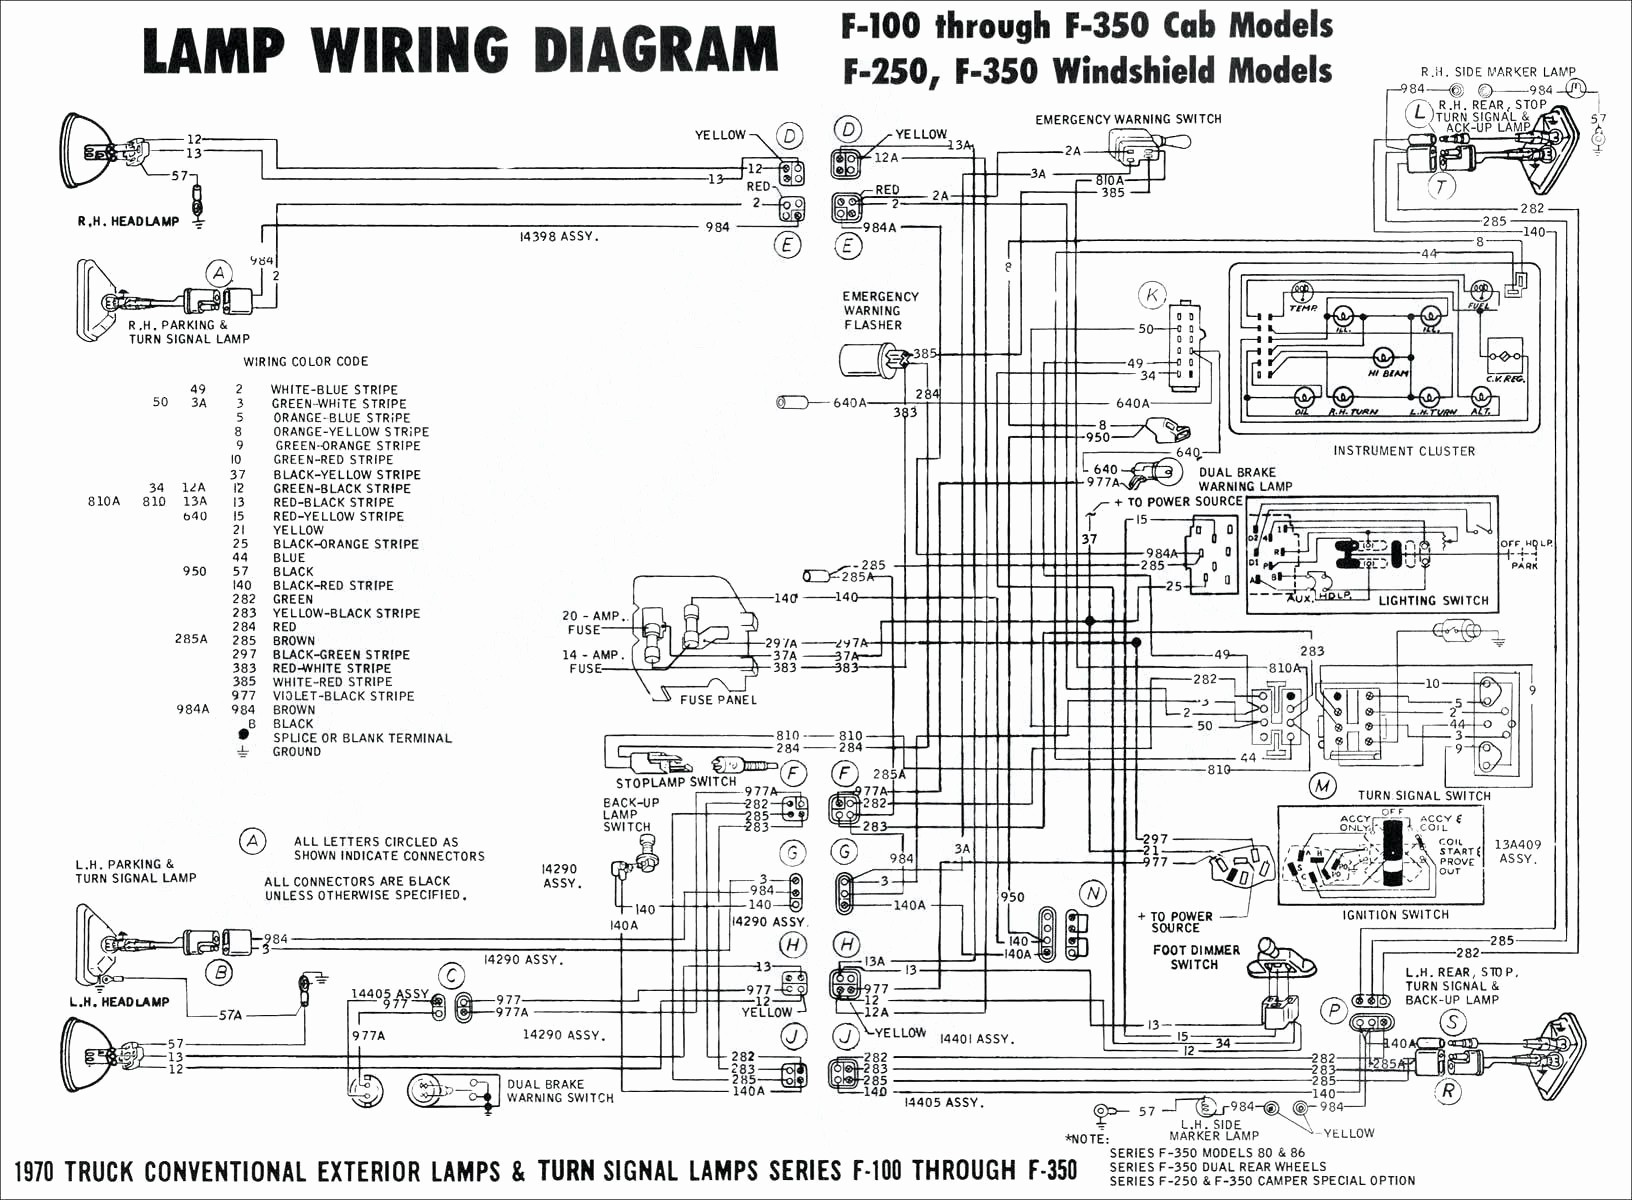 Brake Light Wiring Diagram Chevy Manual New Tail Light Wiring Diagram 1995 Chevy Truck Fresh 1984 Ford Truck